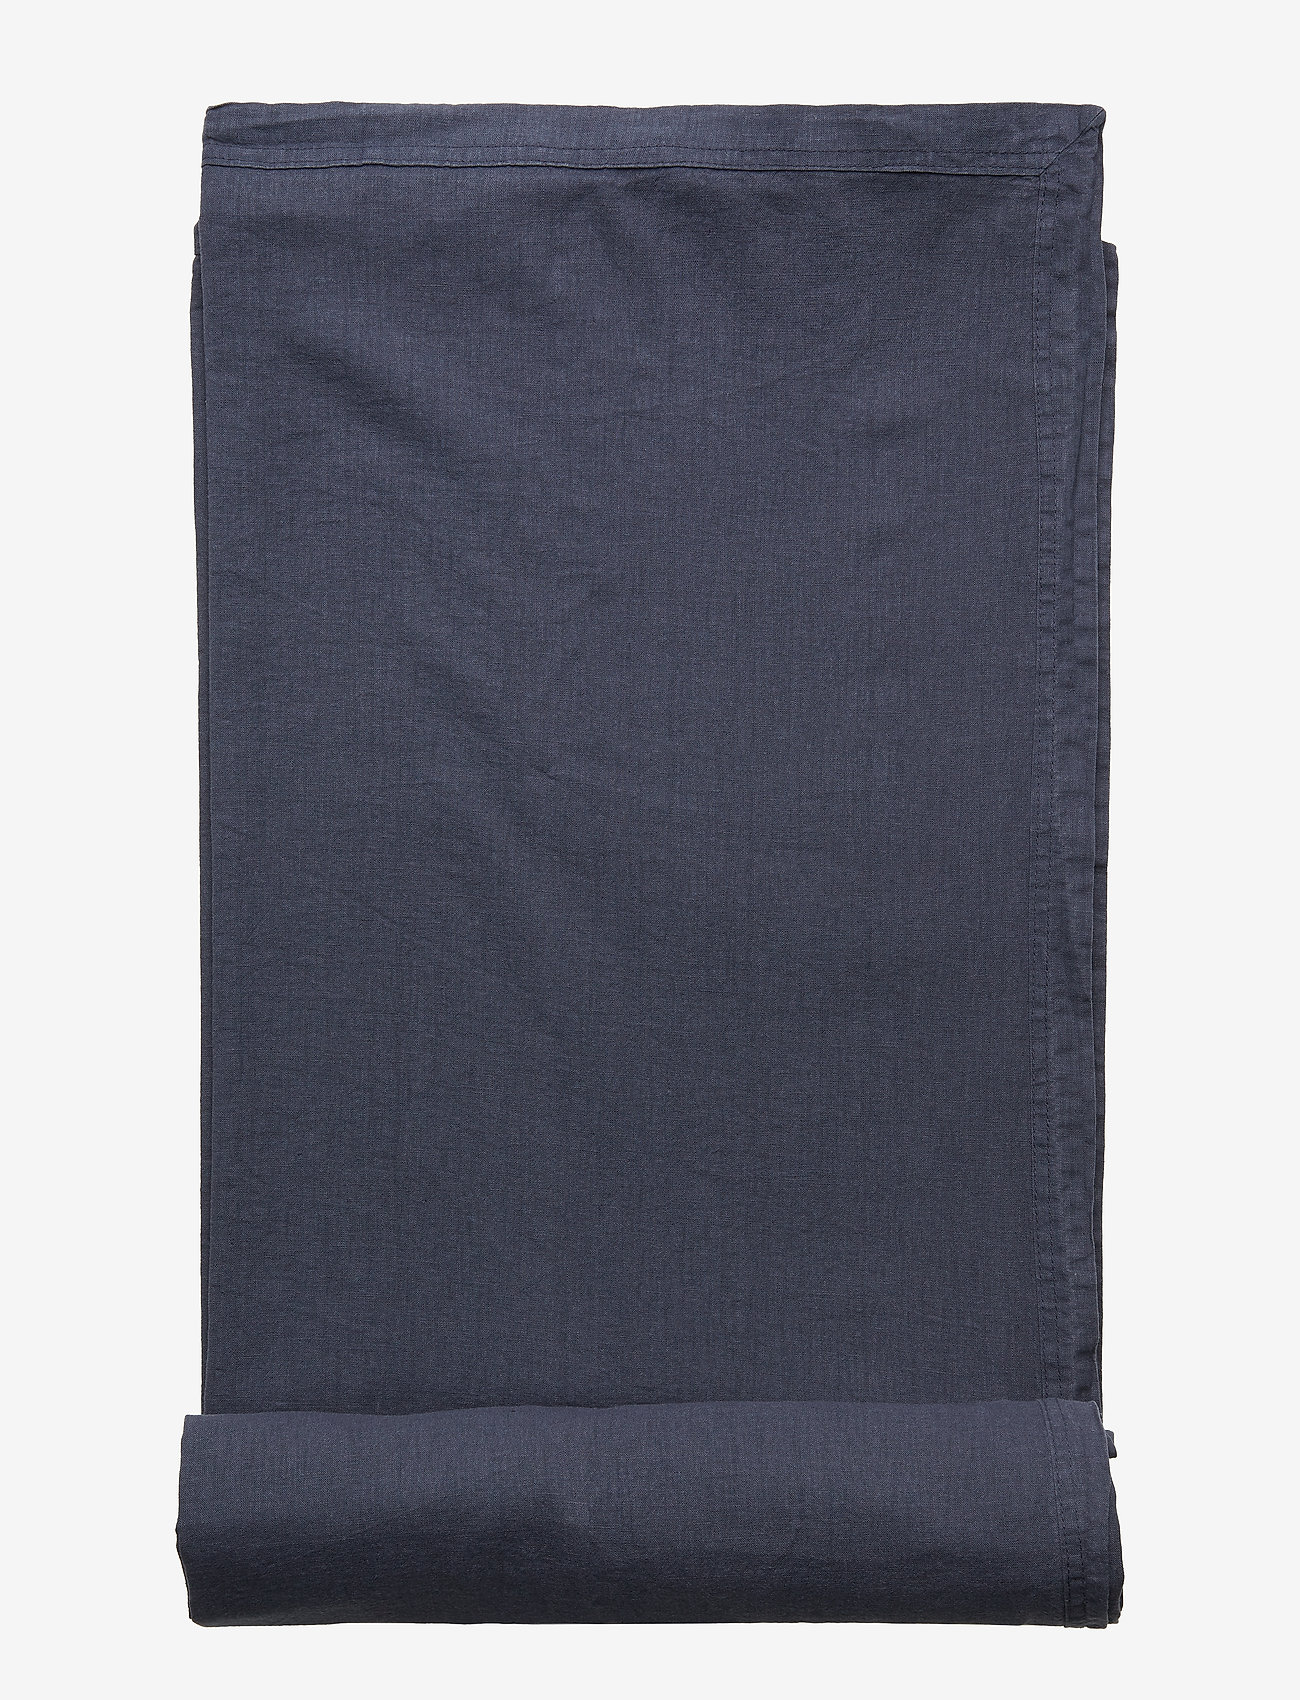 Gripsholm - TABLE CLOTH LINEN BLEND - obrusy - ombre blue - 0